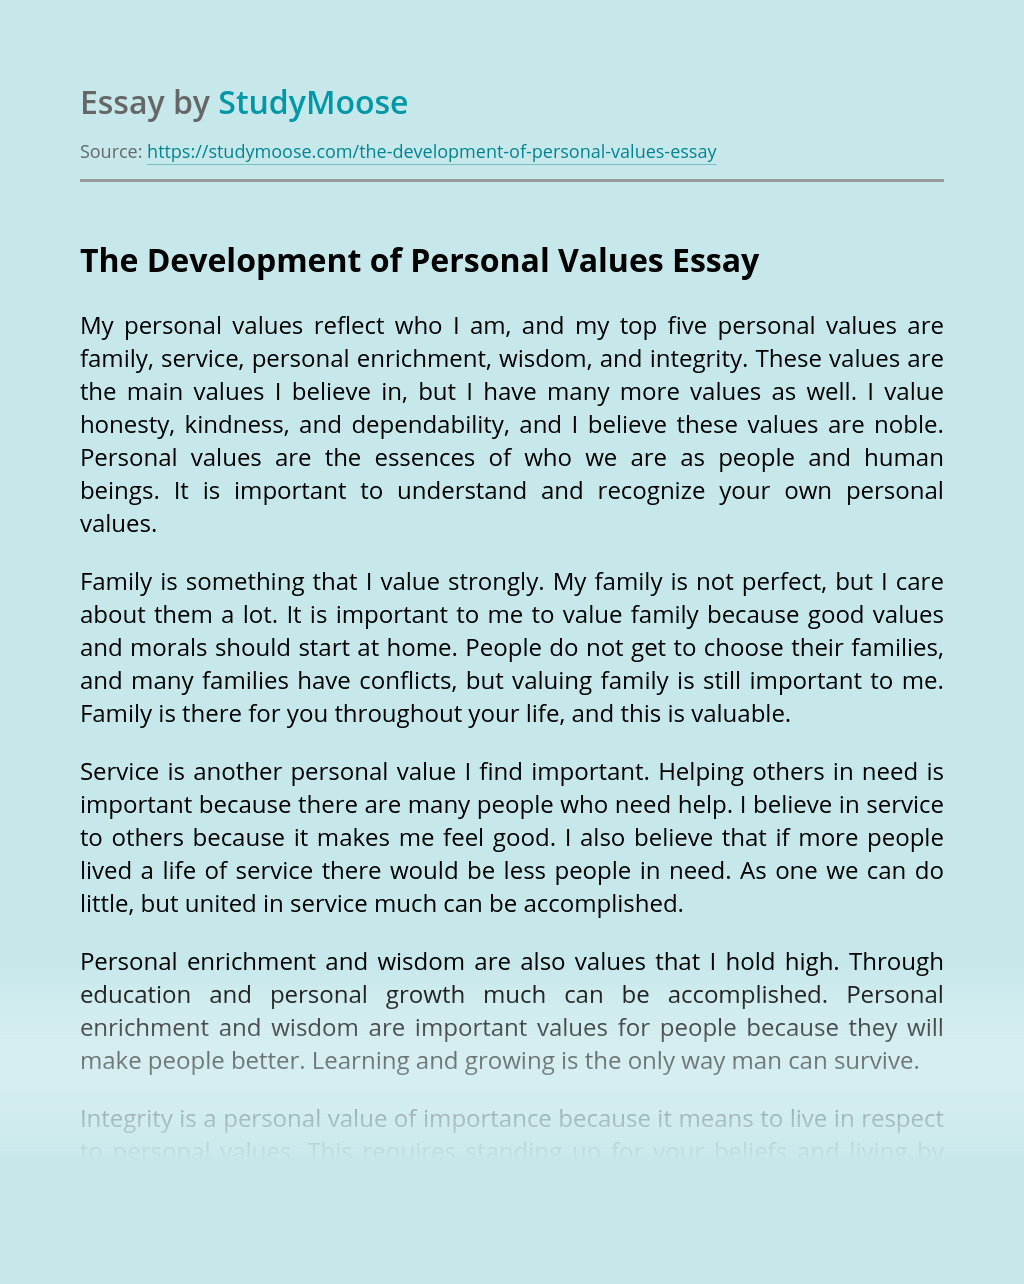 The Development of Personal Values